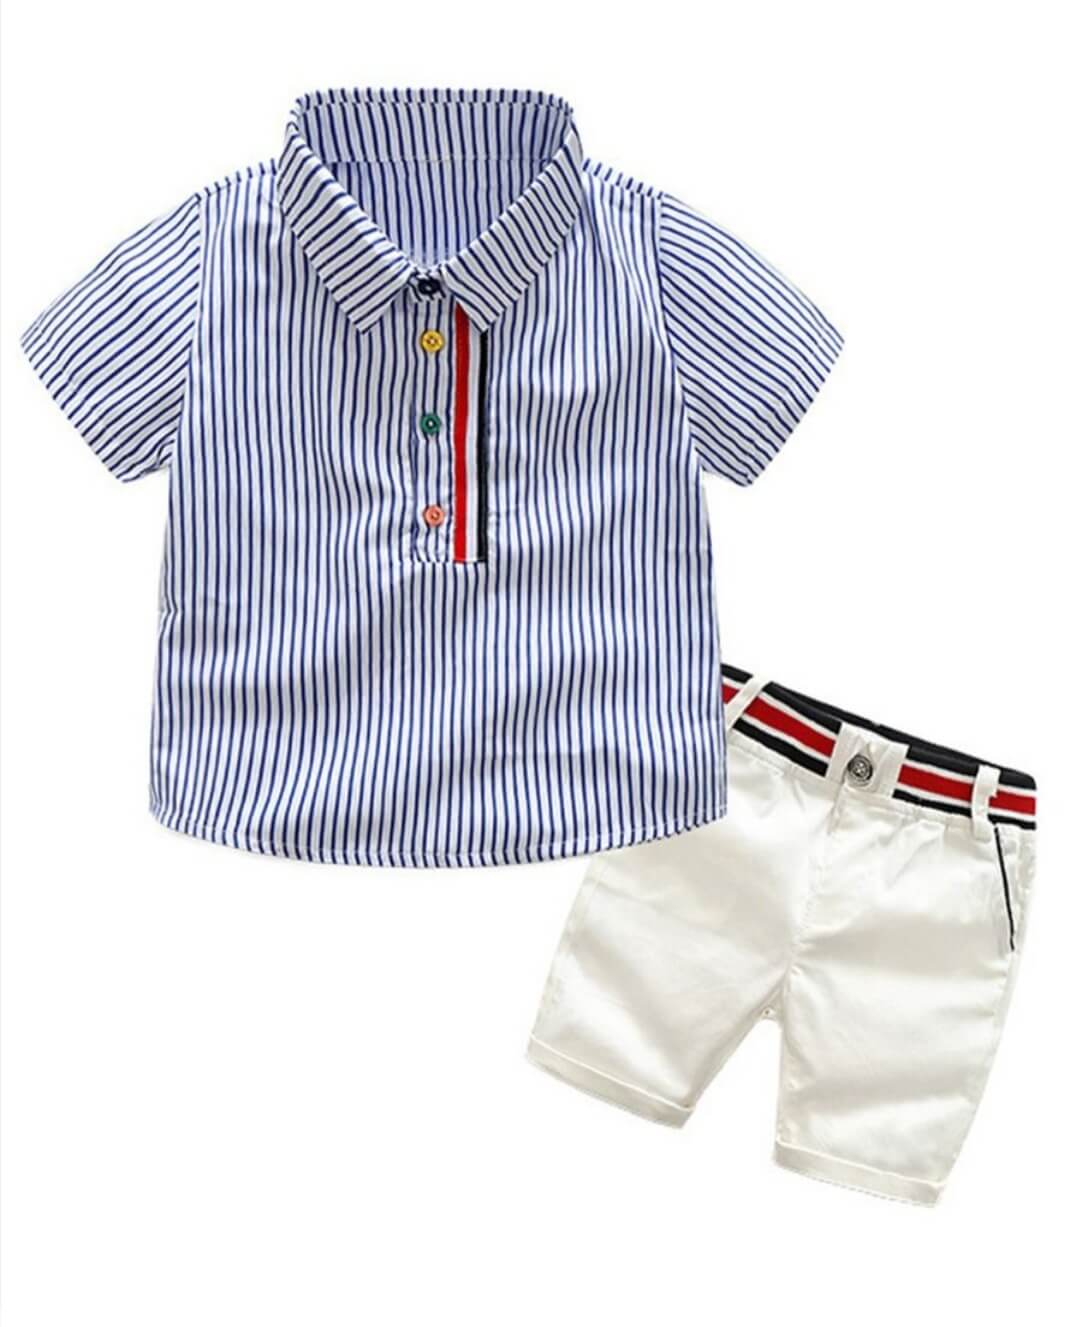 2 piece toddler smart casual shirt for 2 to 3 years